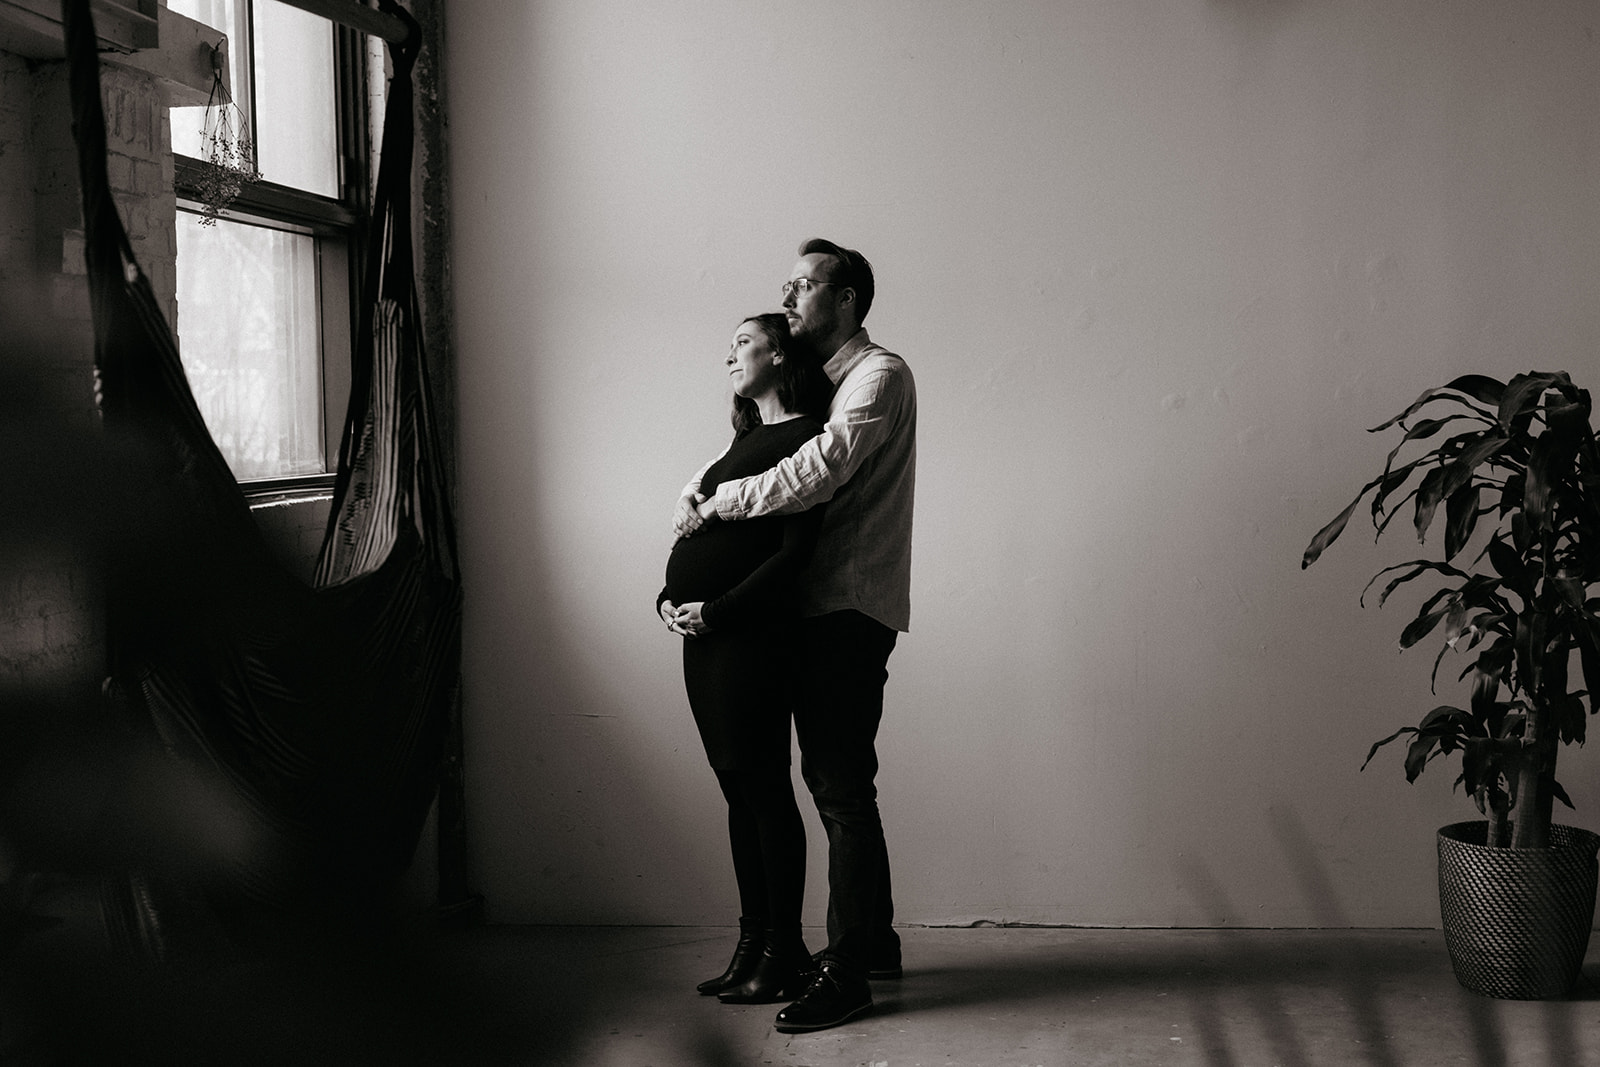 Montreal maternity session. Photographer takes photos of couple in-studio.